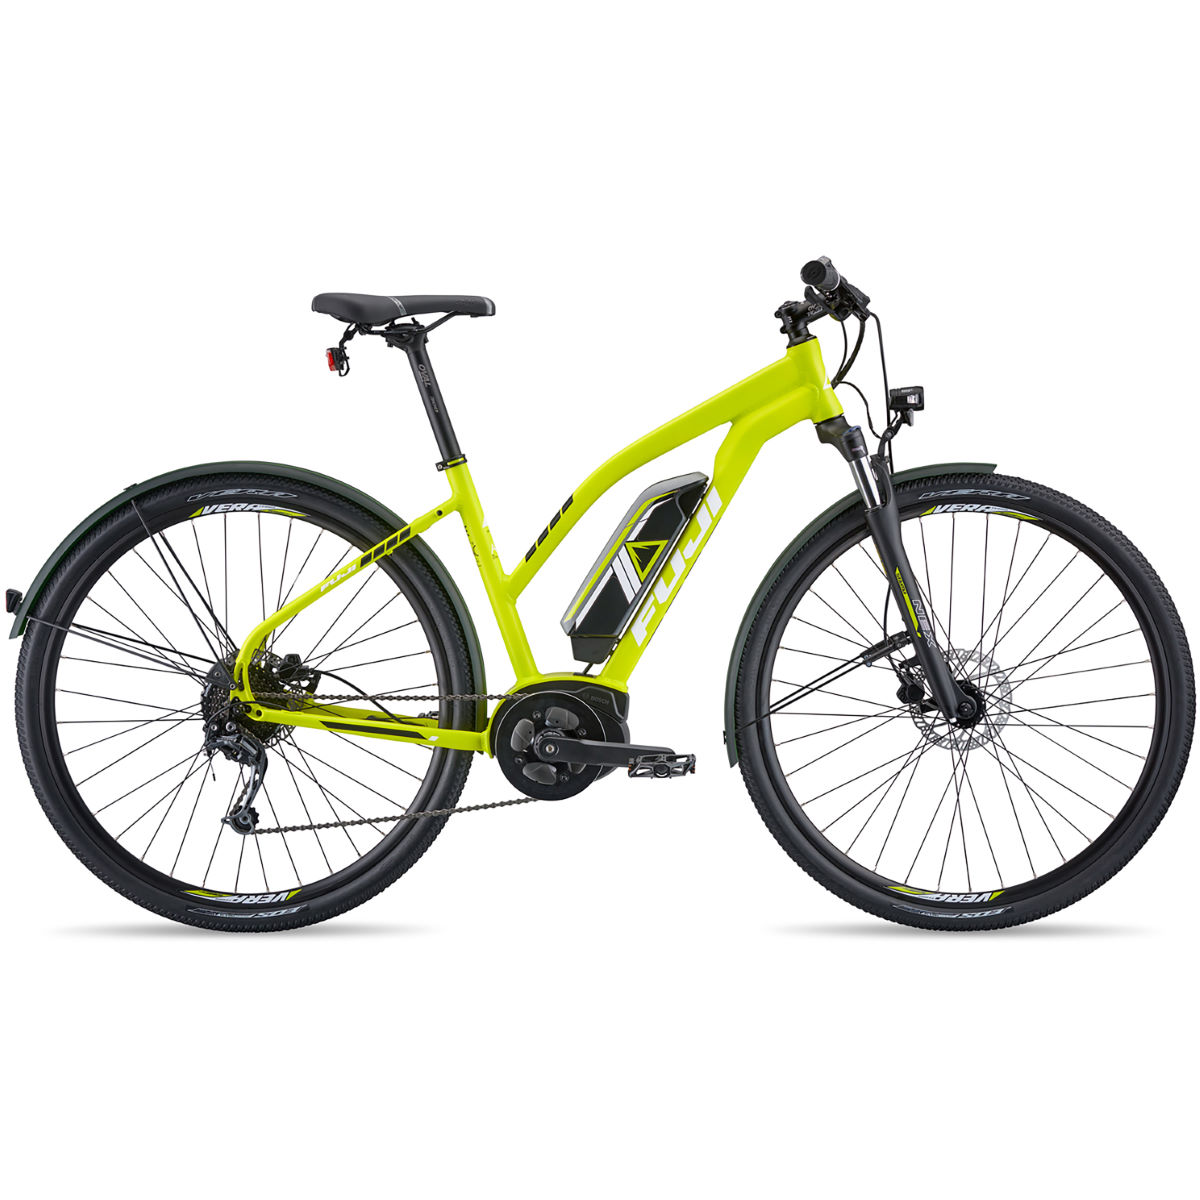 Fuji E-Traverse 1.3 ST Intl 2019 Electric Urban Bikes